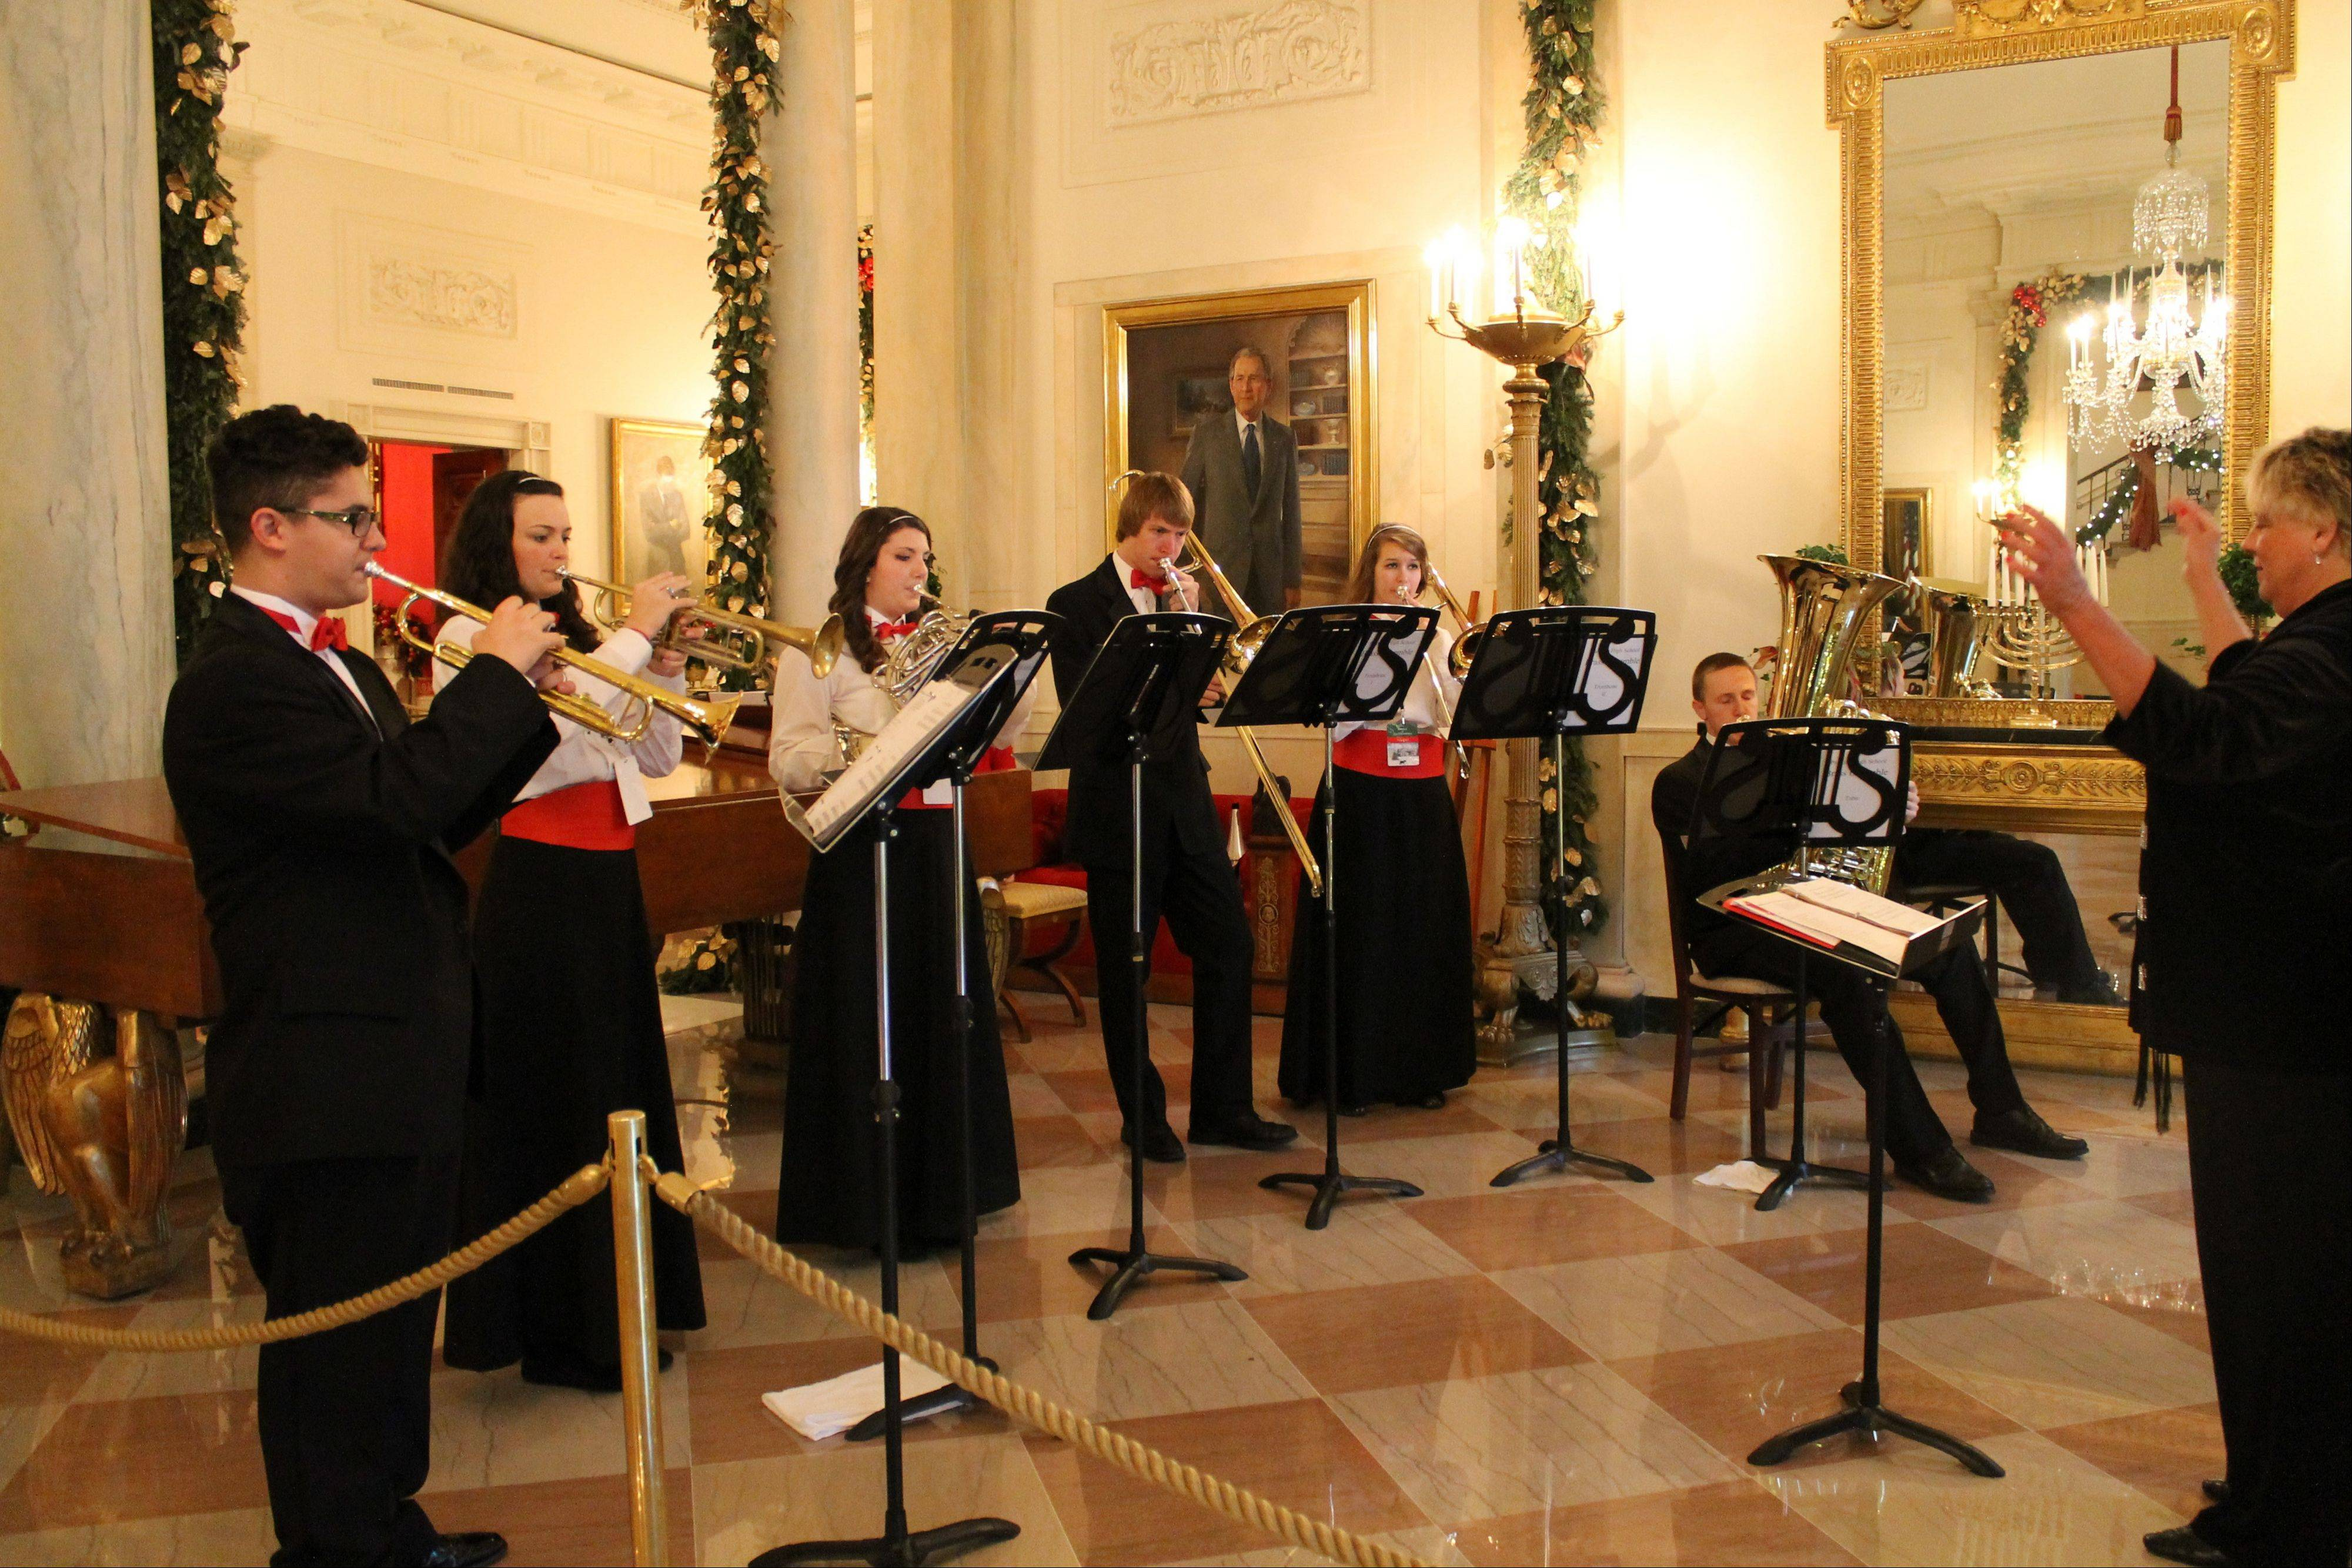 The Palatine High School Brass Ensemble performs Saturday morning in the White House grand foyer during a holiday open house. Performers Jonathan Szabo, Natalie Stevens, Jenna Campbell, Joe VanBladel, Kirsten Eissman and Ken Cervenka are under the direction of conductor Raeleen Horn.